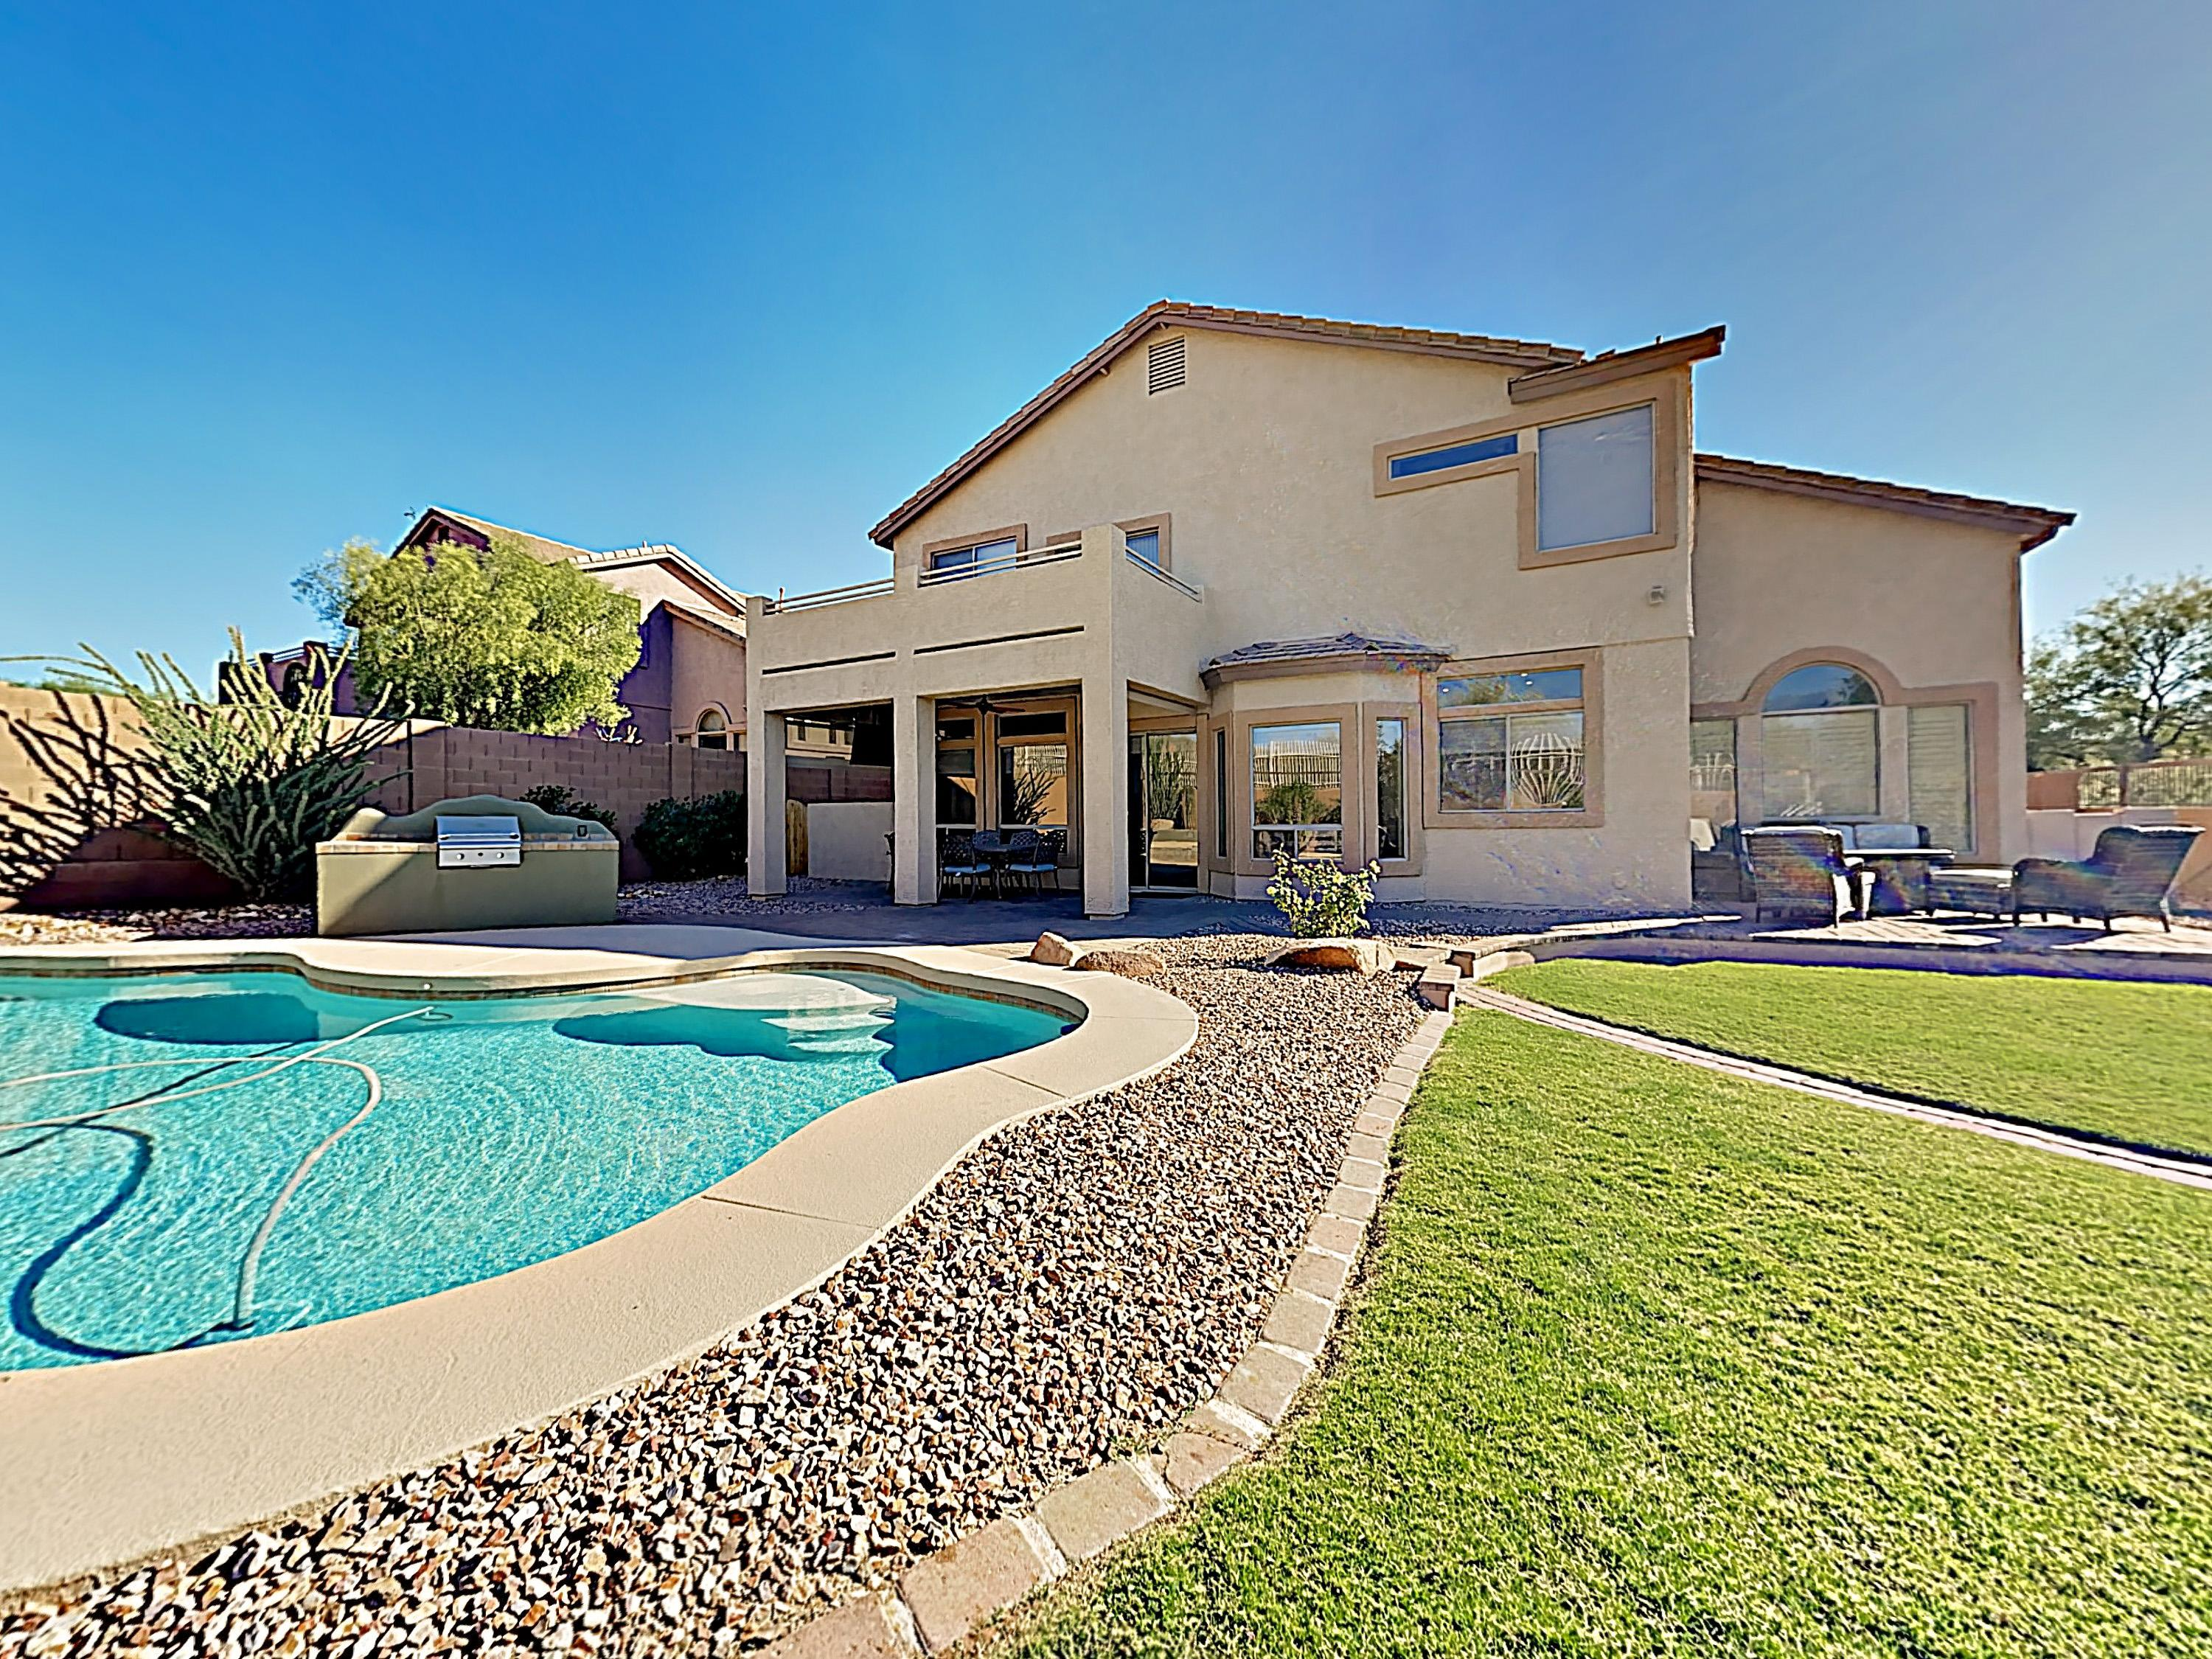 Welcome to Mesa! This home is professionally managed by TurnKey Vacation Rentals.